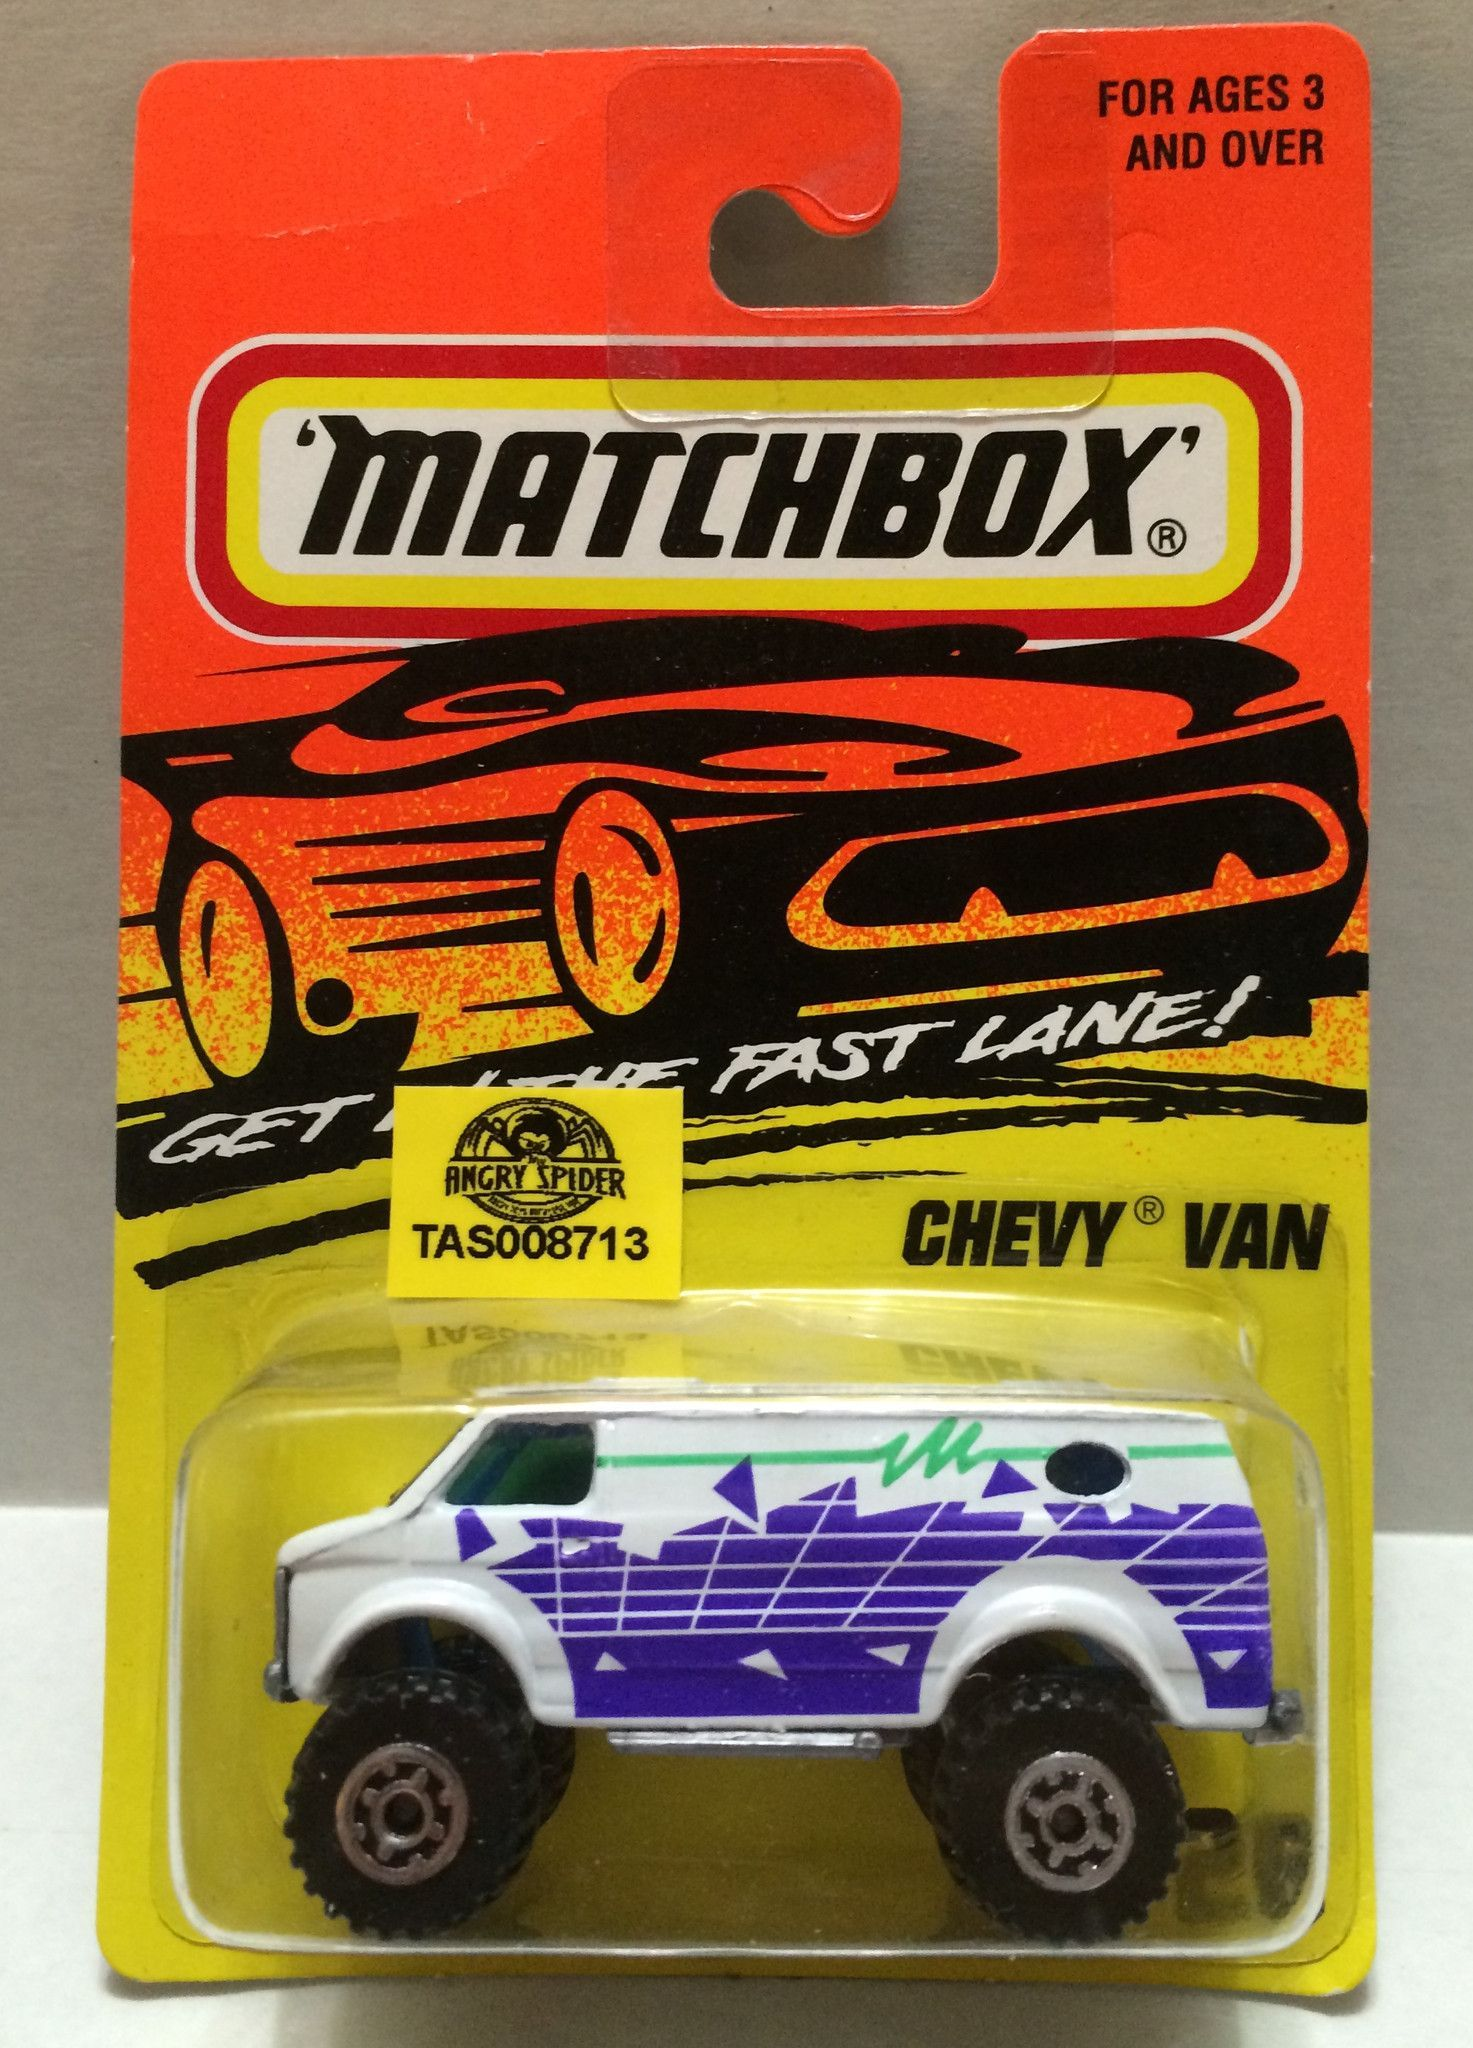 Car 3 toys  TAS  Matchbox Racing Car  Chevy Van  Chevy vans and Products